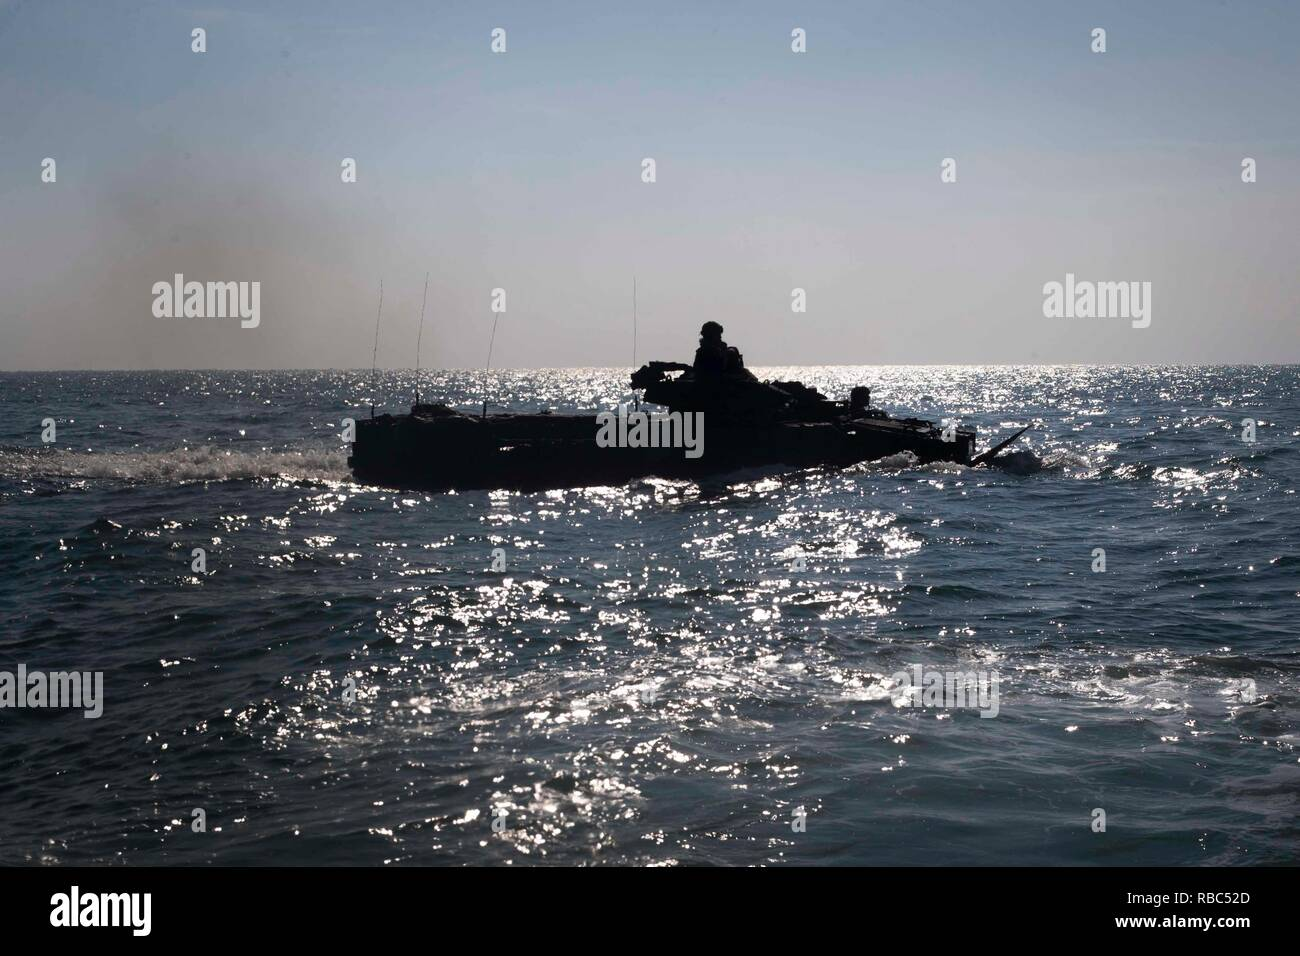 Danny Ocean Stock Photos & Danny Ocean Stock Images - Alamy